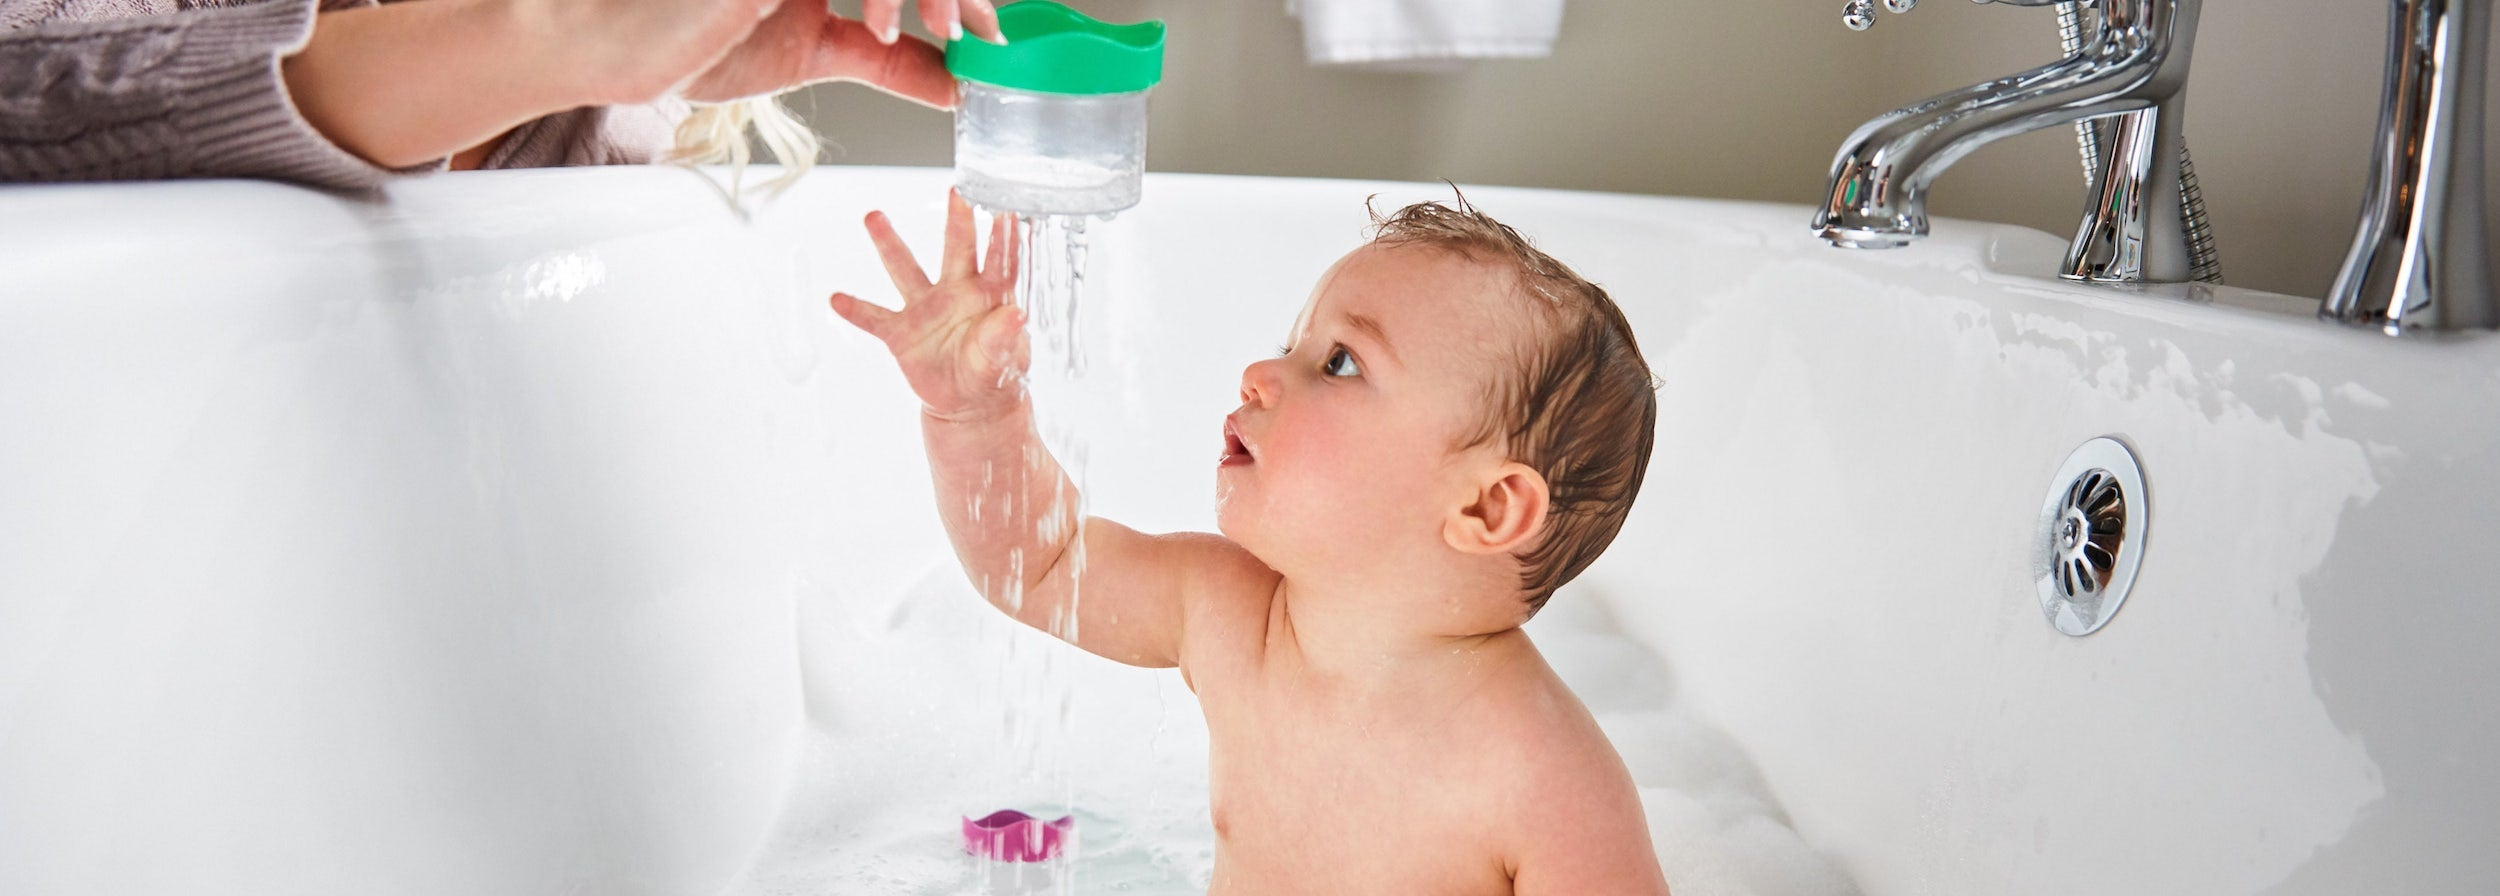 baby in bathtub looking at water poured out of plastic continer